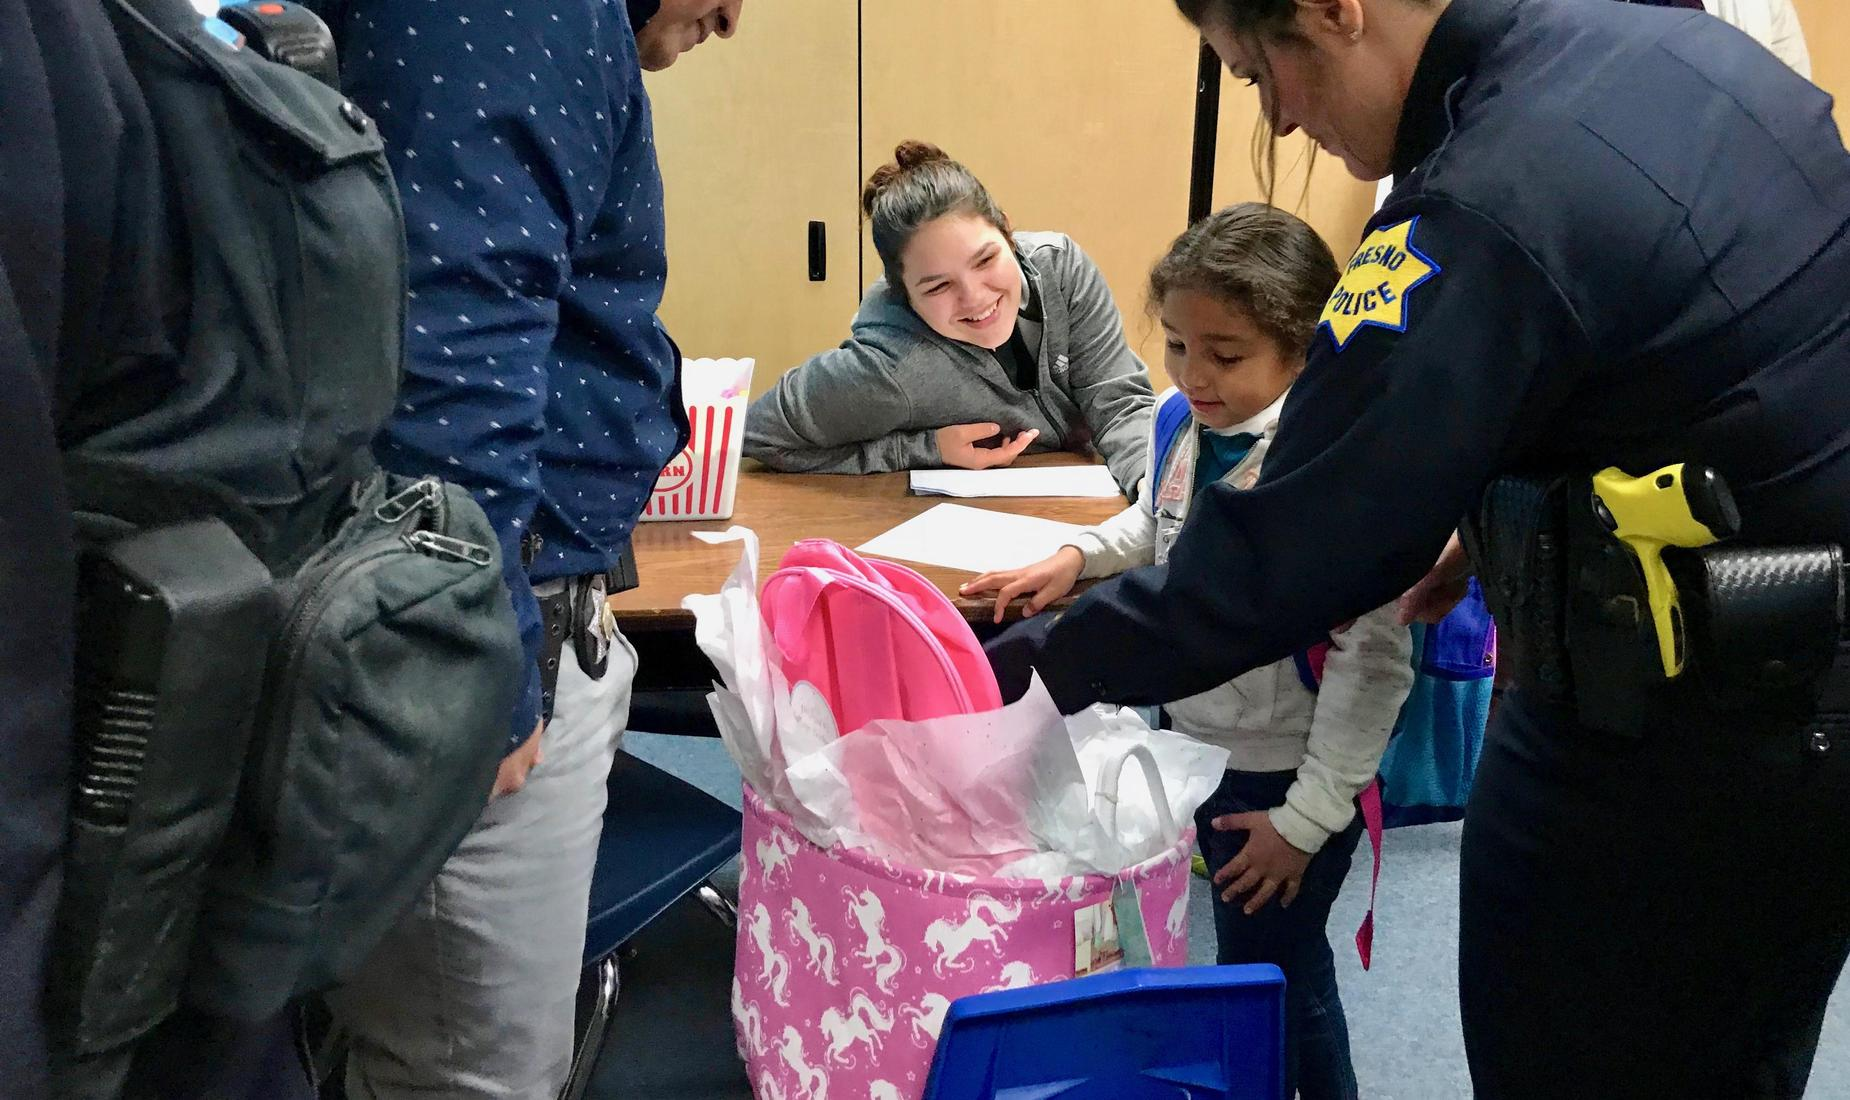 Madison student receiving a gift backpack